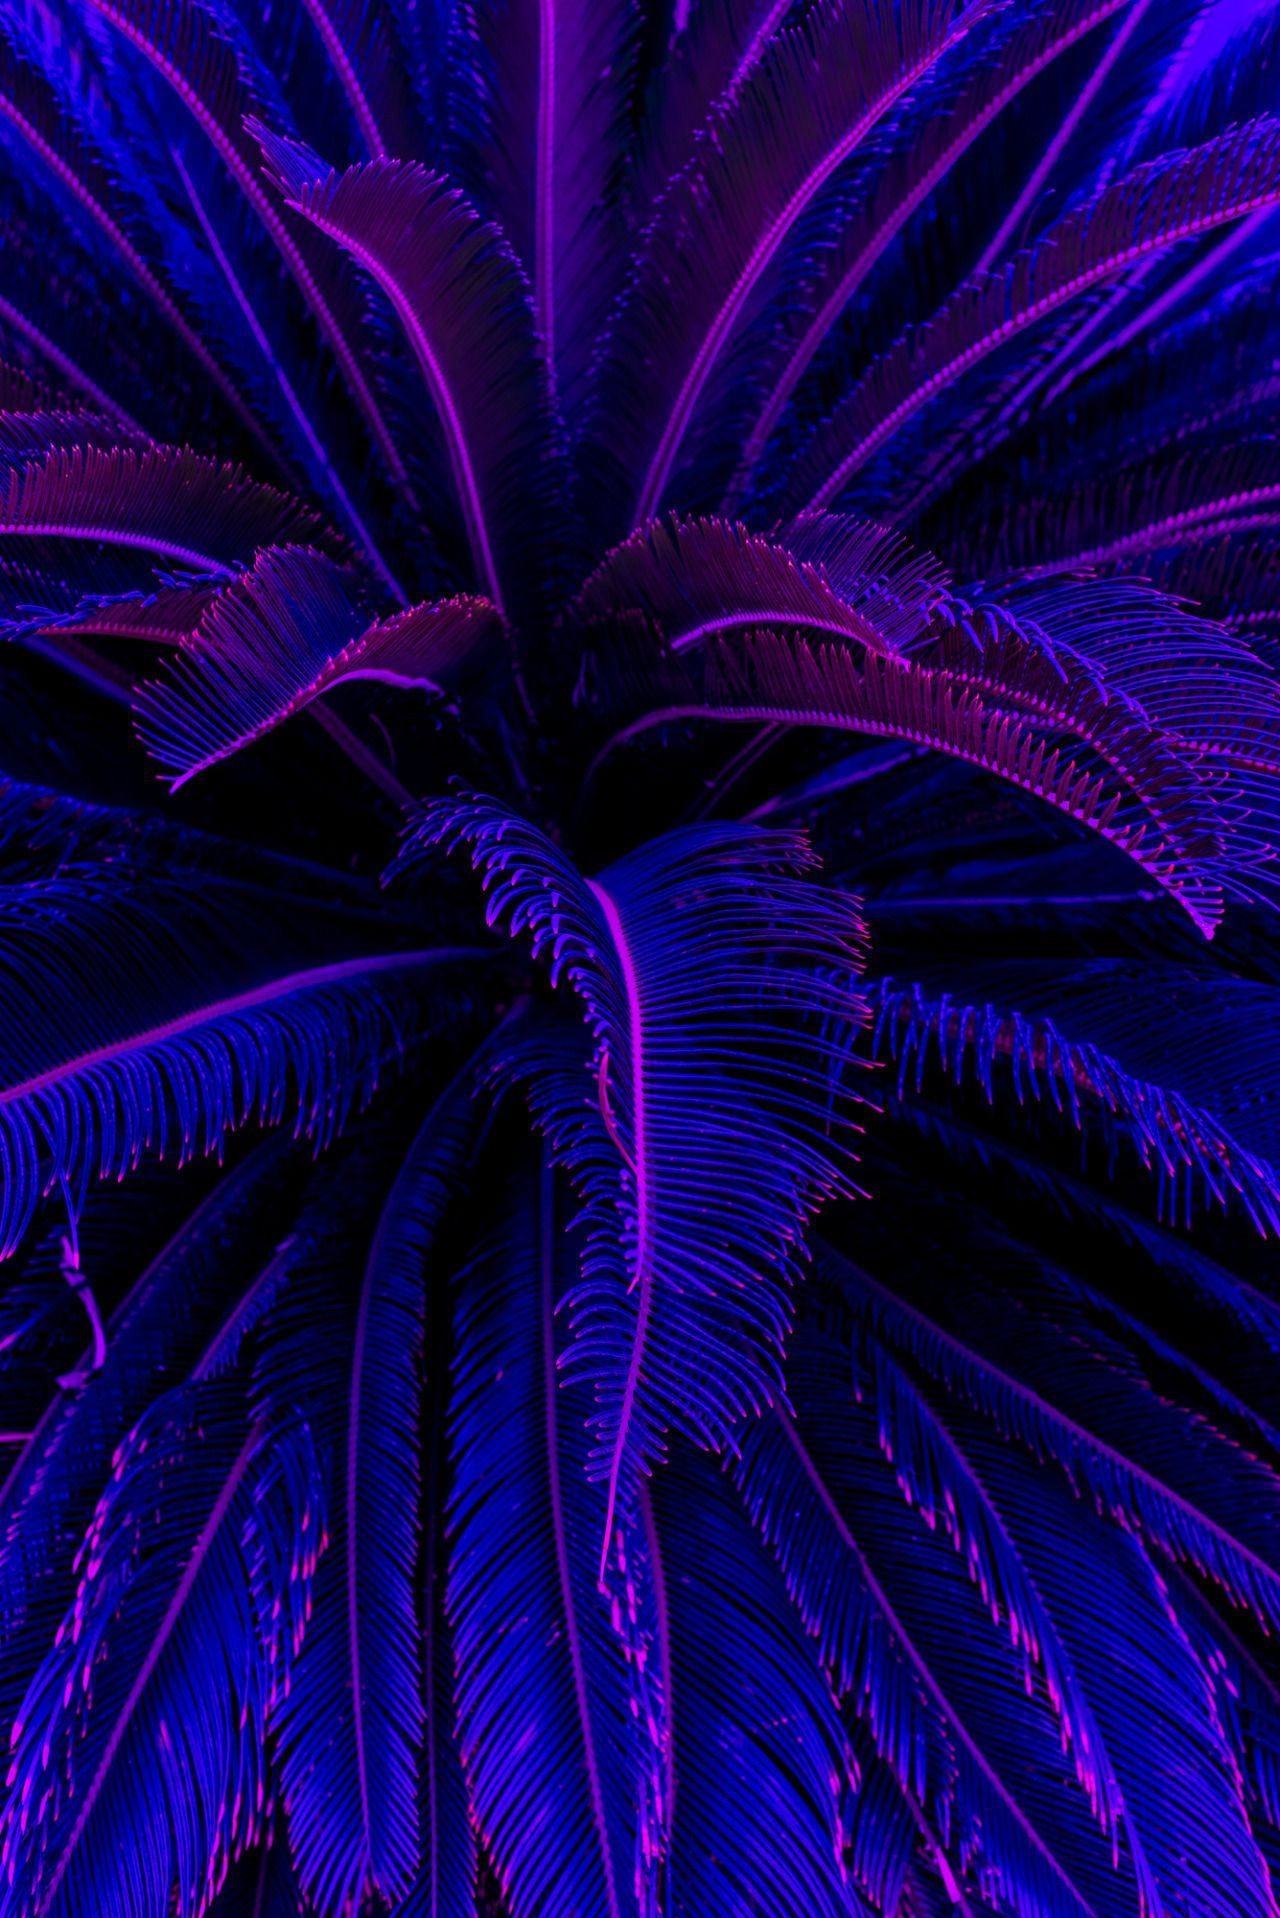 Purple Aesthetic iPhone Wallpapers - Top Free Purple ...